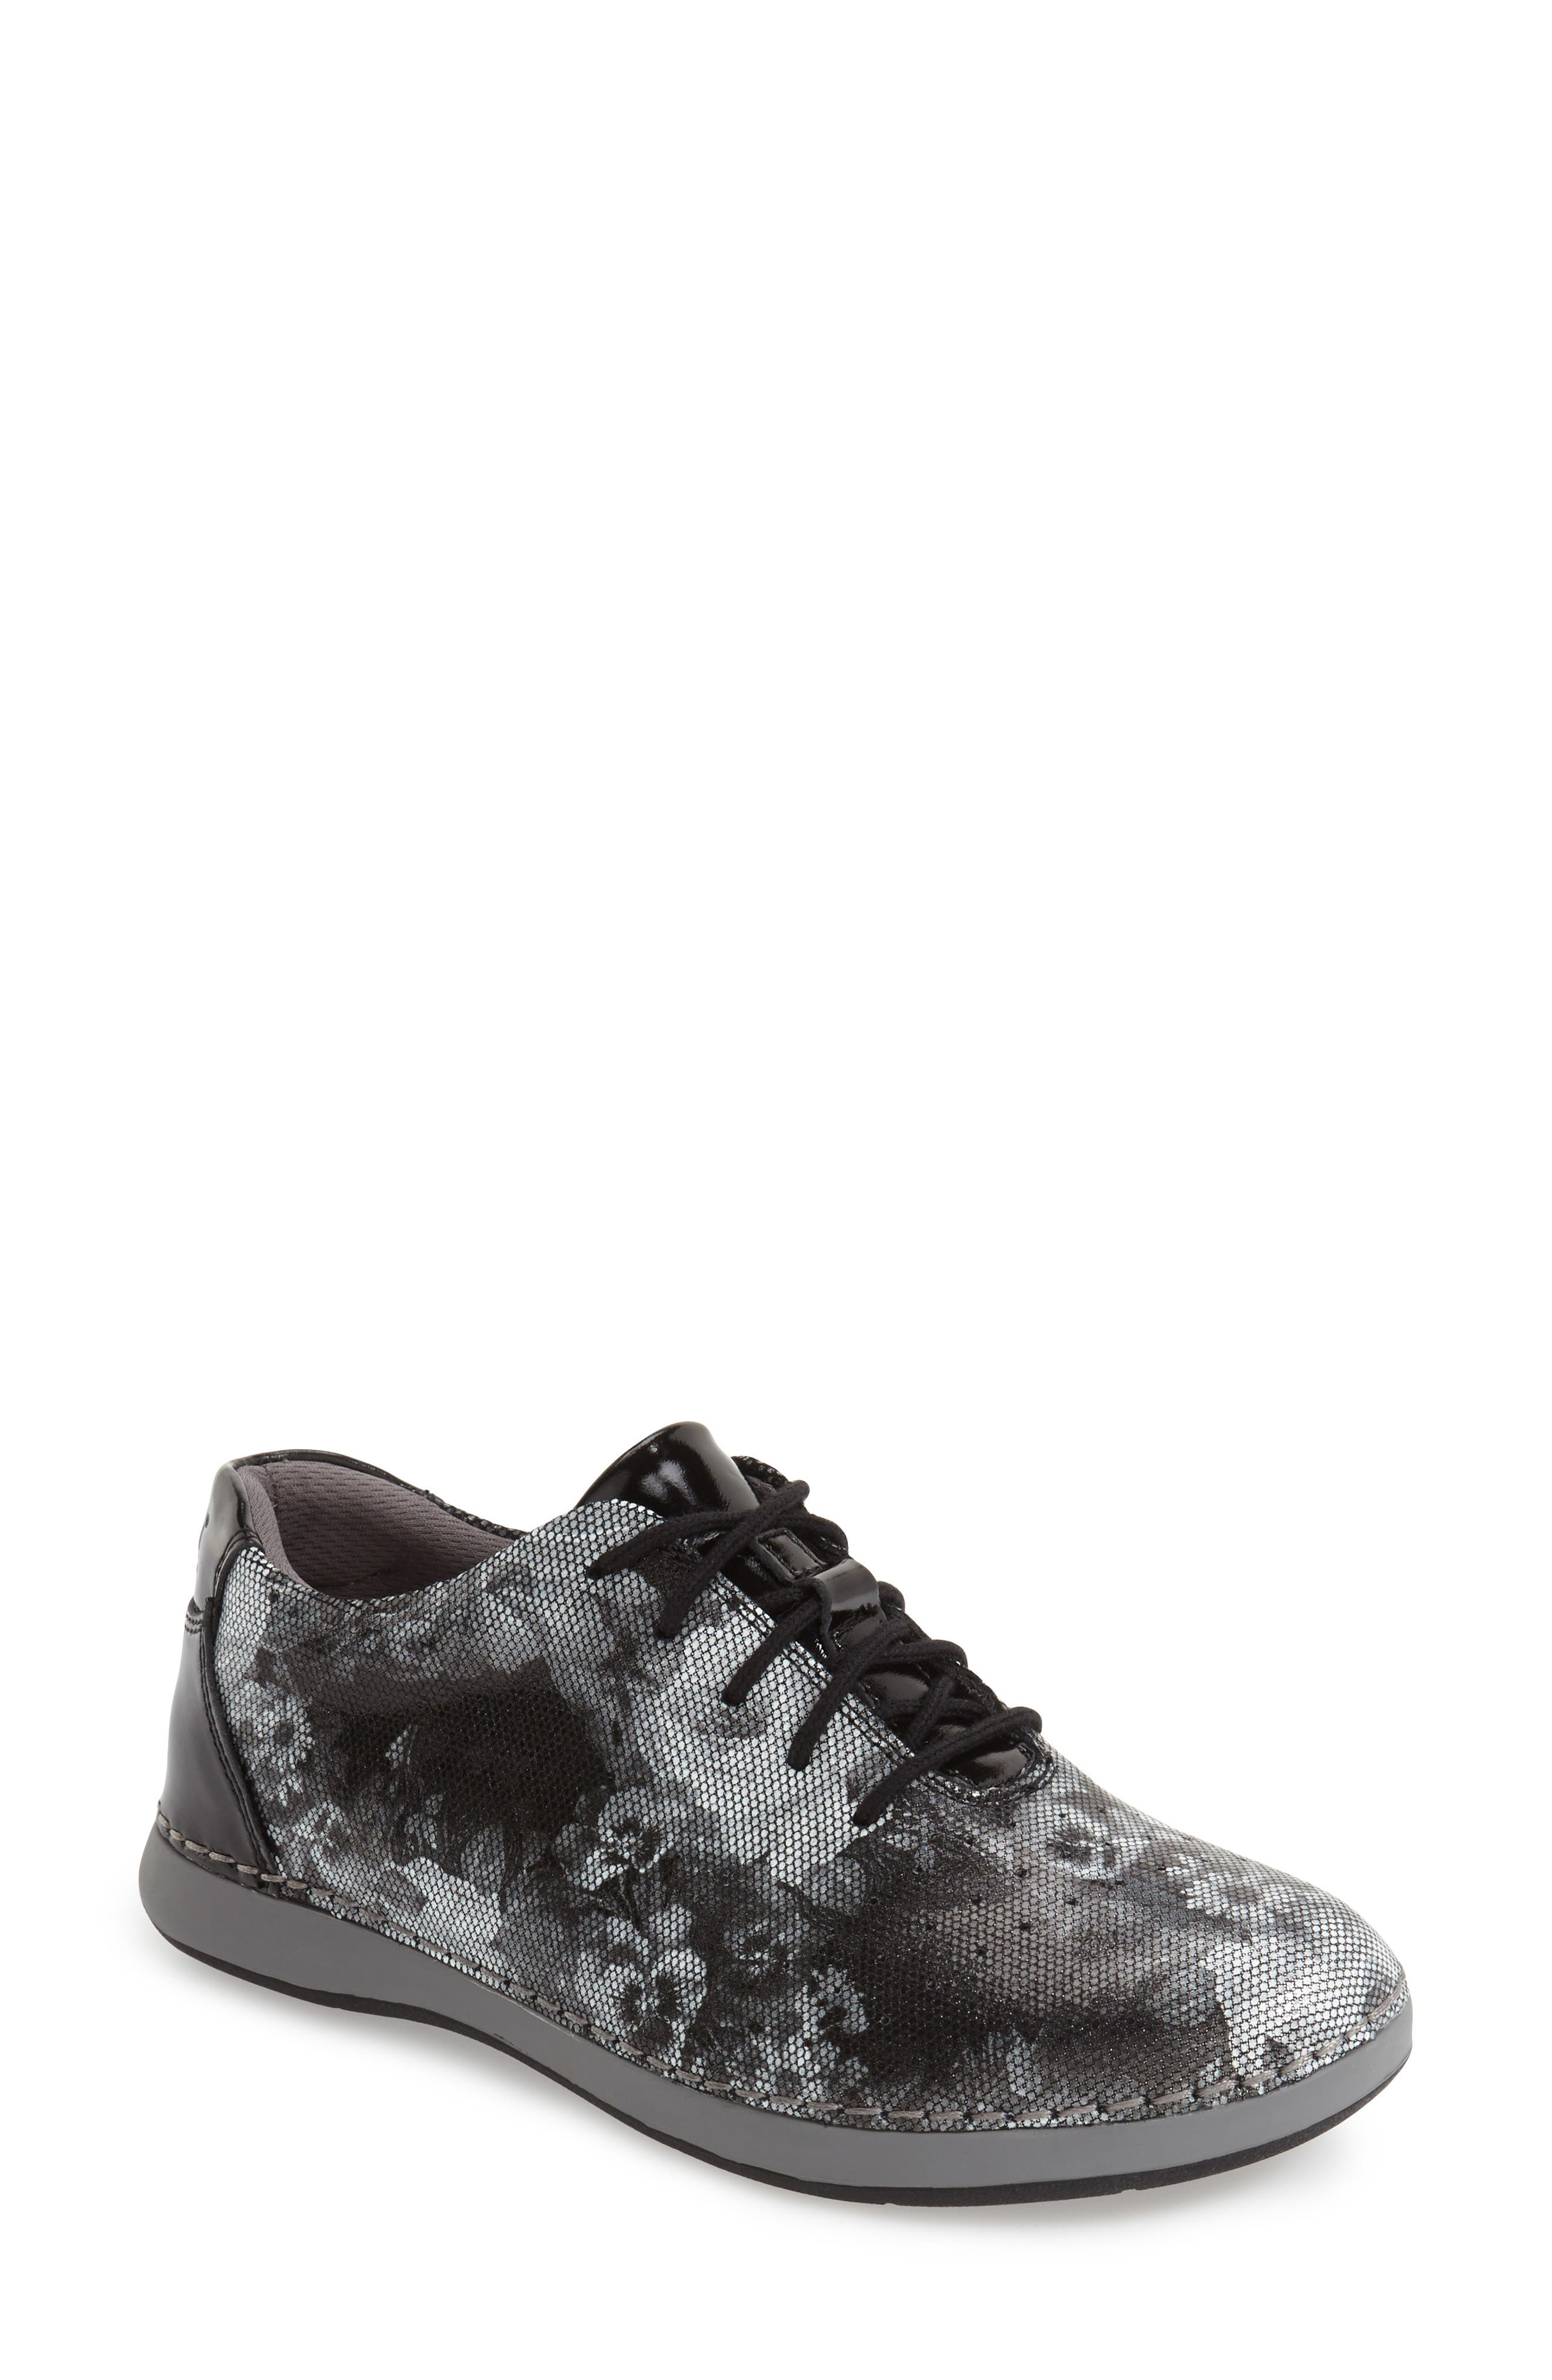 Main Image - Alegria Essence Lace-Up Leather Oxford (Women)